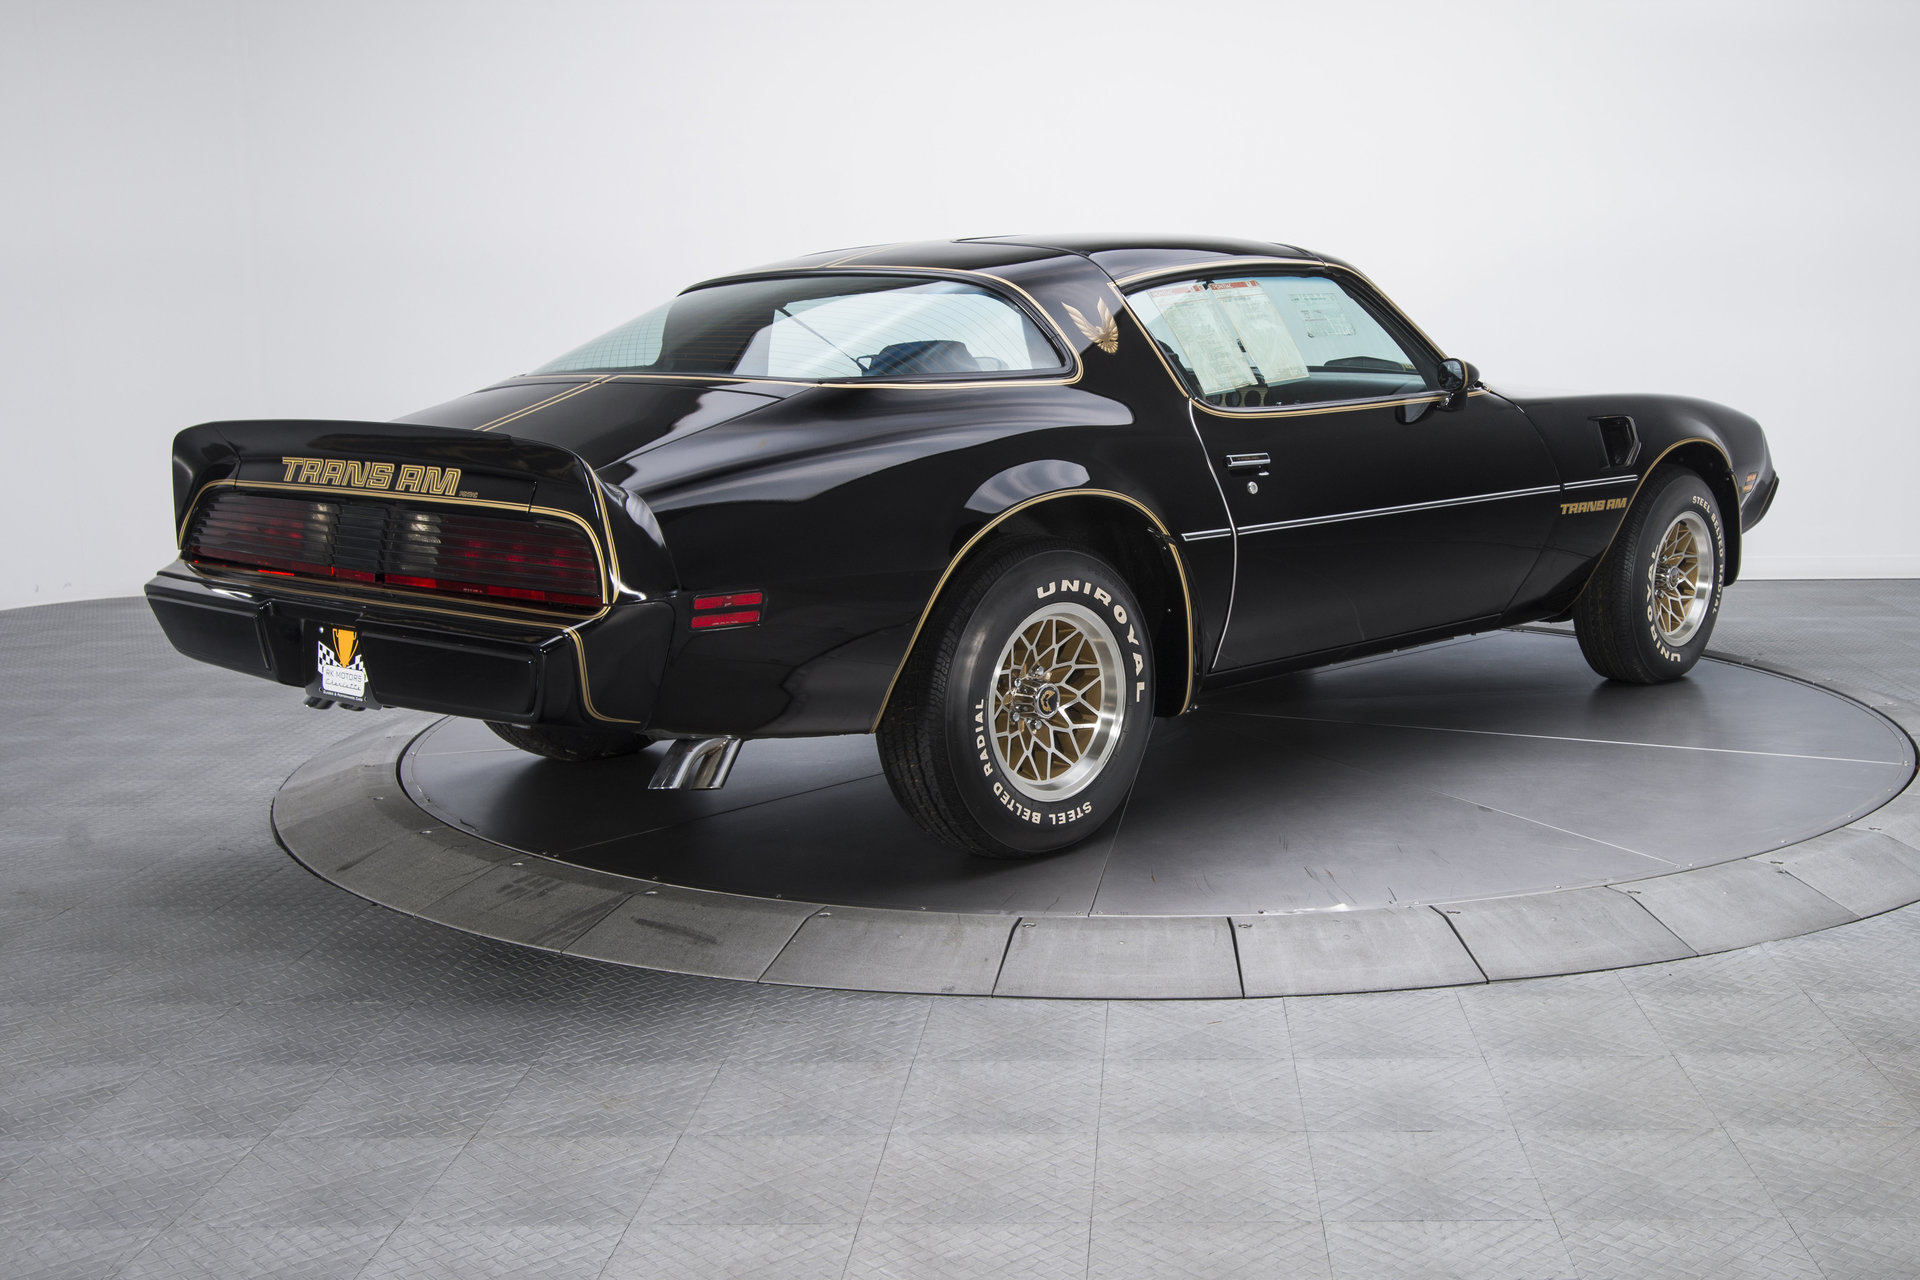 1979 Trans Am Picture This Pristine 1979 Pontiac Trans Am Has Traveled Just 65 Miles